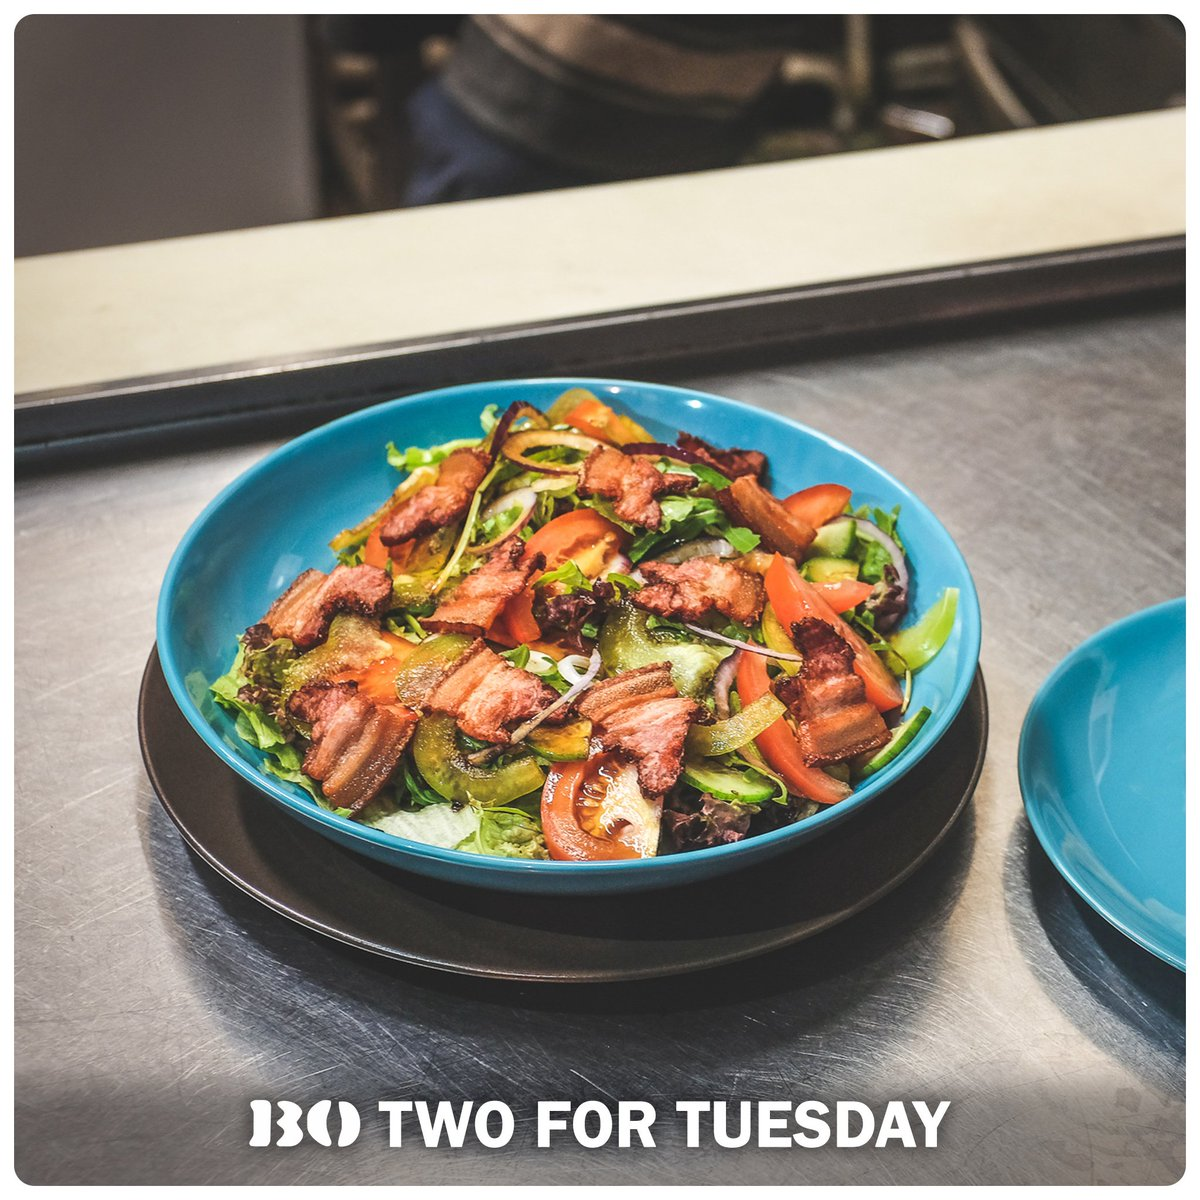 #twofortuesday special offers makes it even cheaper than preparing your food at home. Check the bar board for these special offers :) https://t.co/WQVHLLlchq